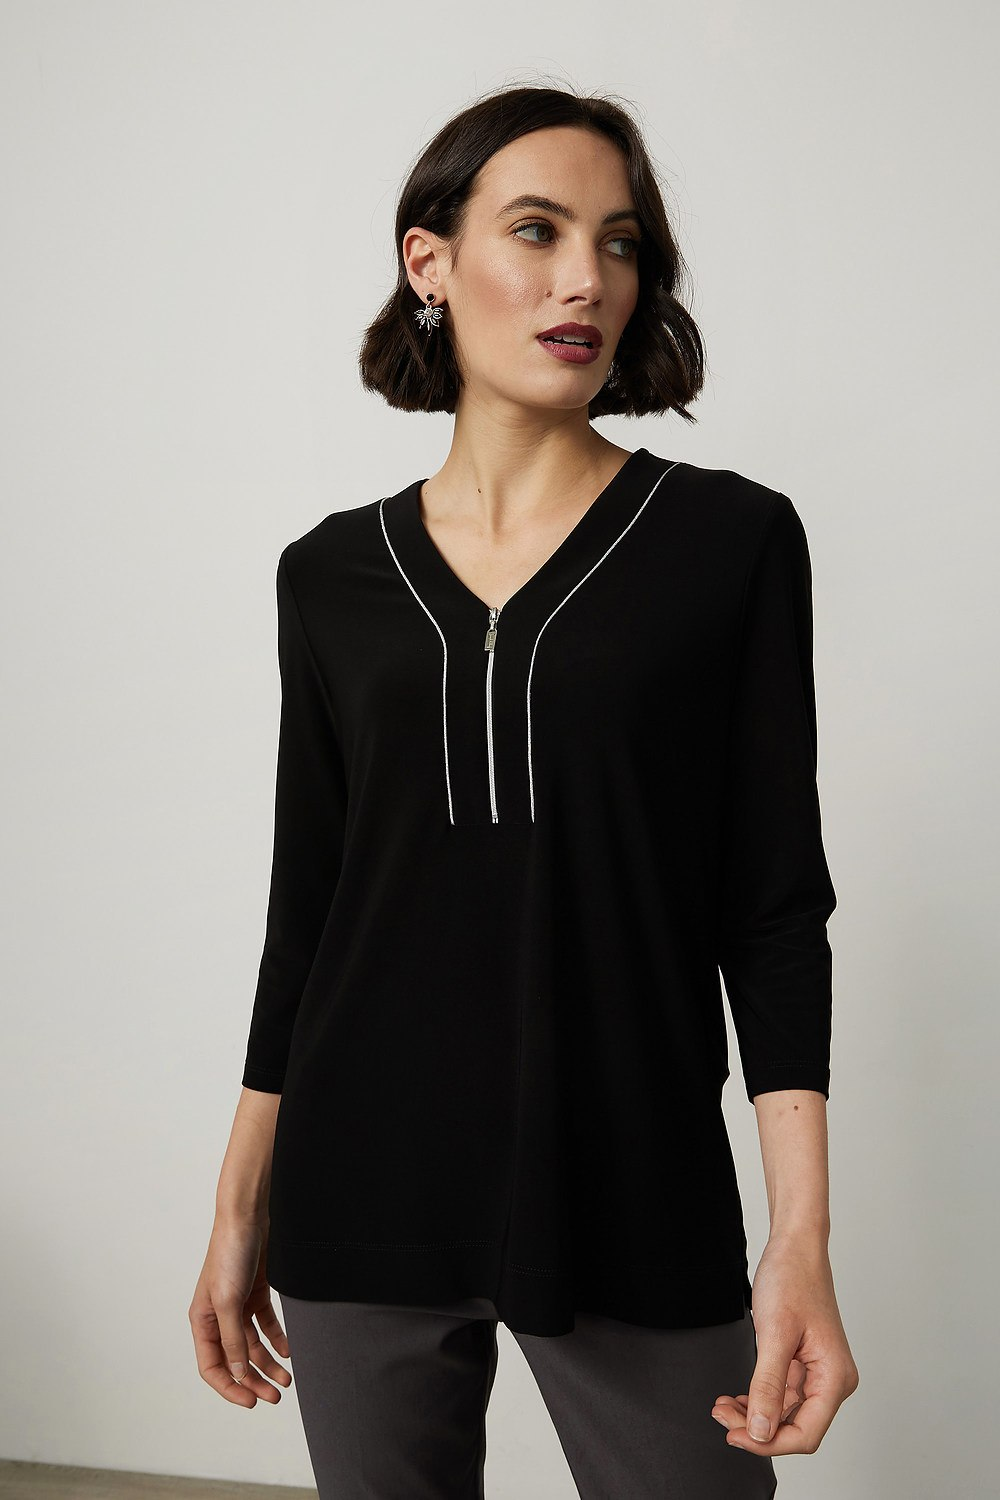 Joseph Ribkoff Piped Detail Top Style 214168 (black)